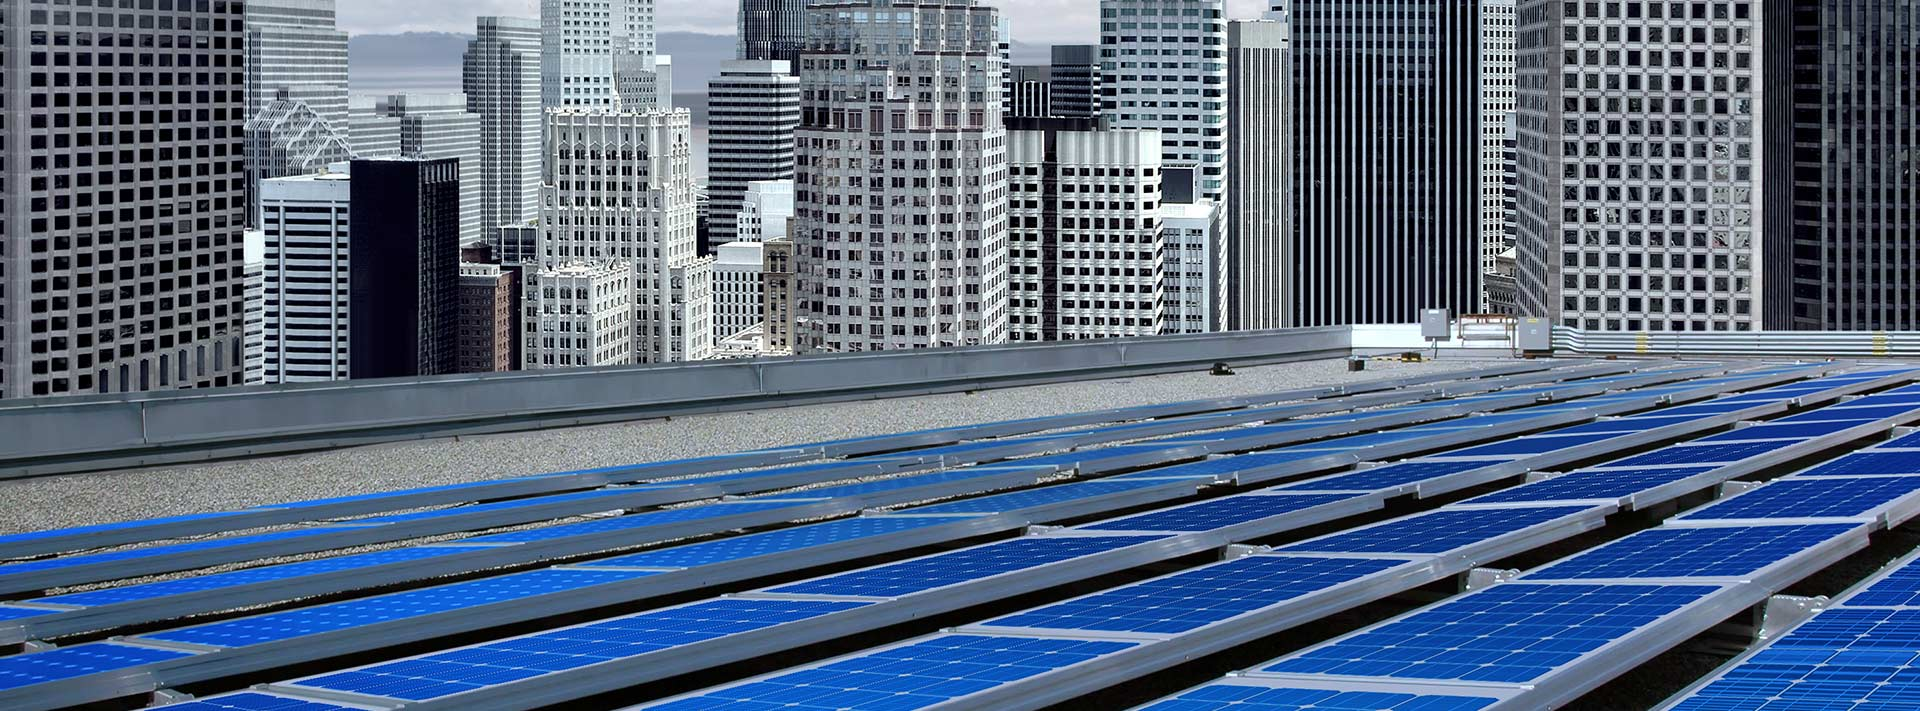 4 issues to consider before installing solar panels at your business